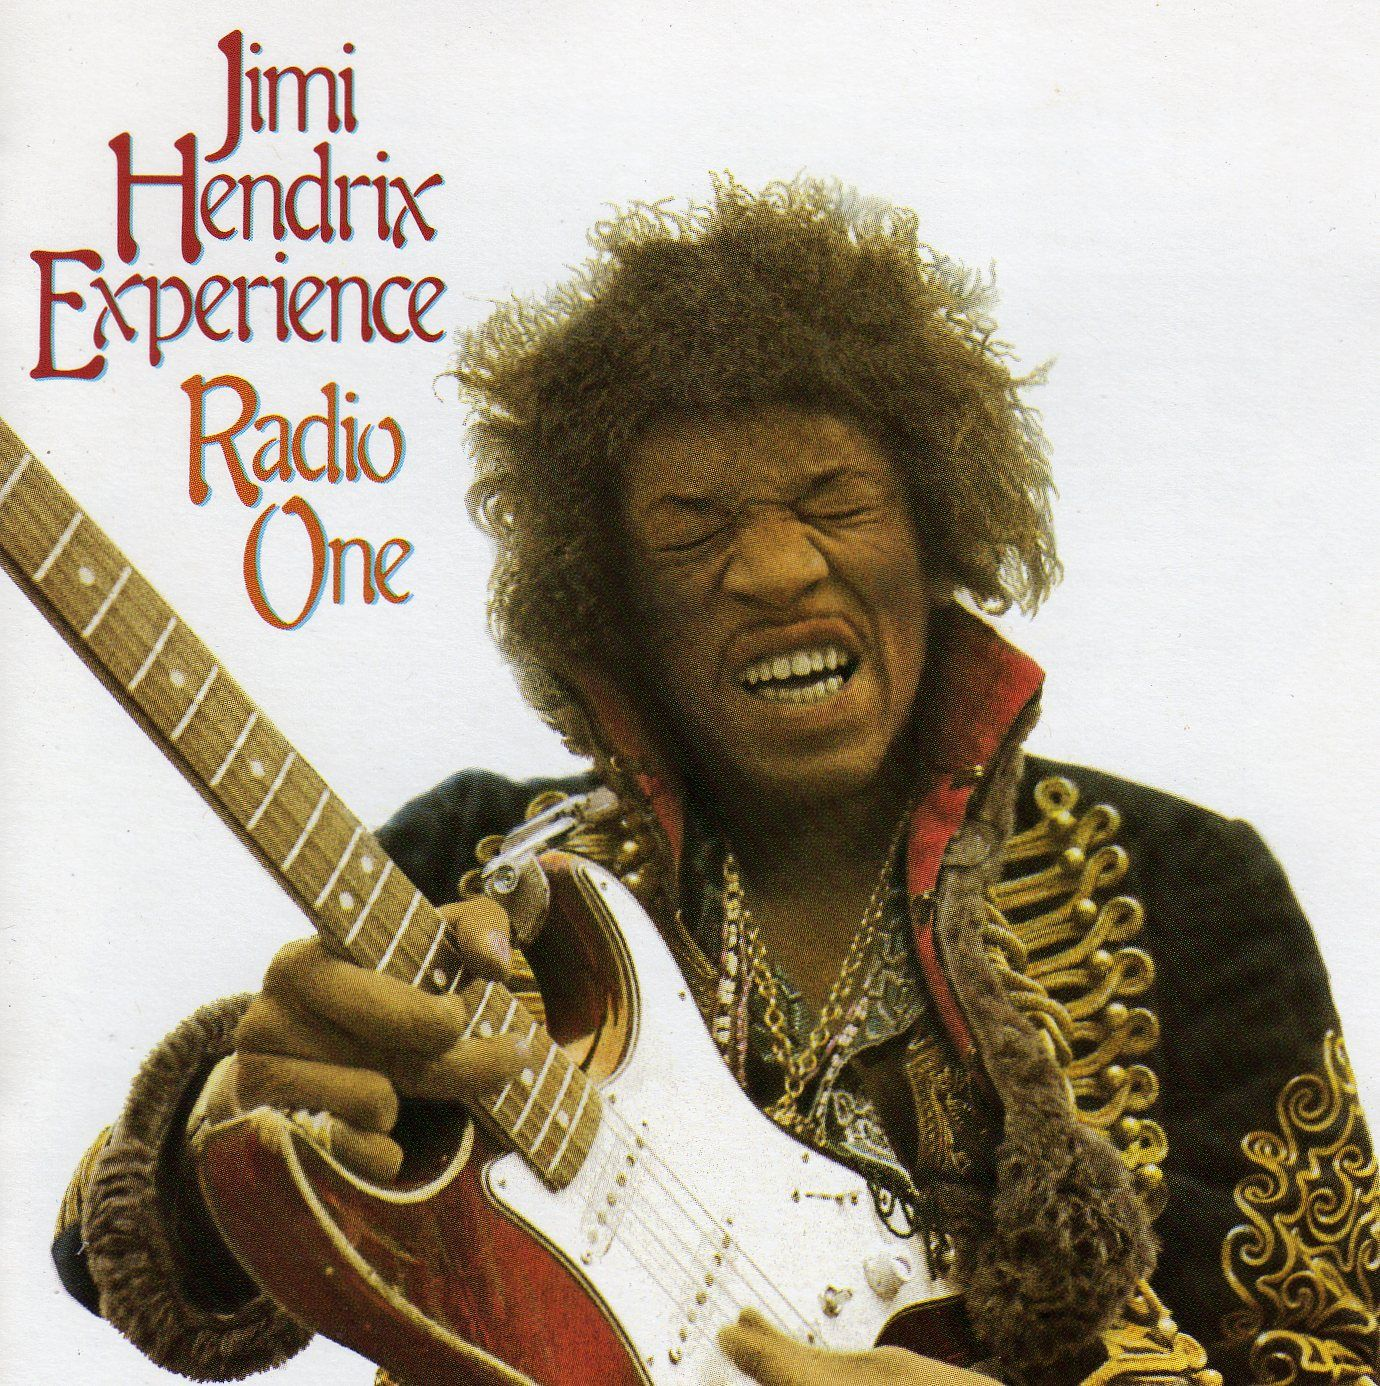 jazz rock fusion guitar jimi hendrix 1967 1988 radio one. Black Bedroom Furniture Sets. Home Design Ideas